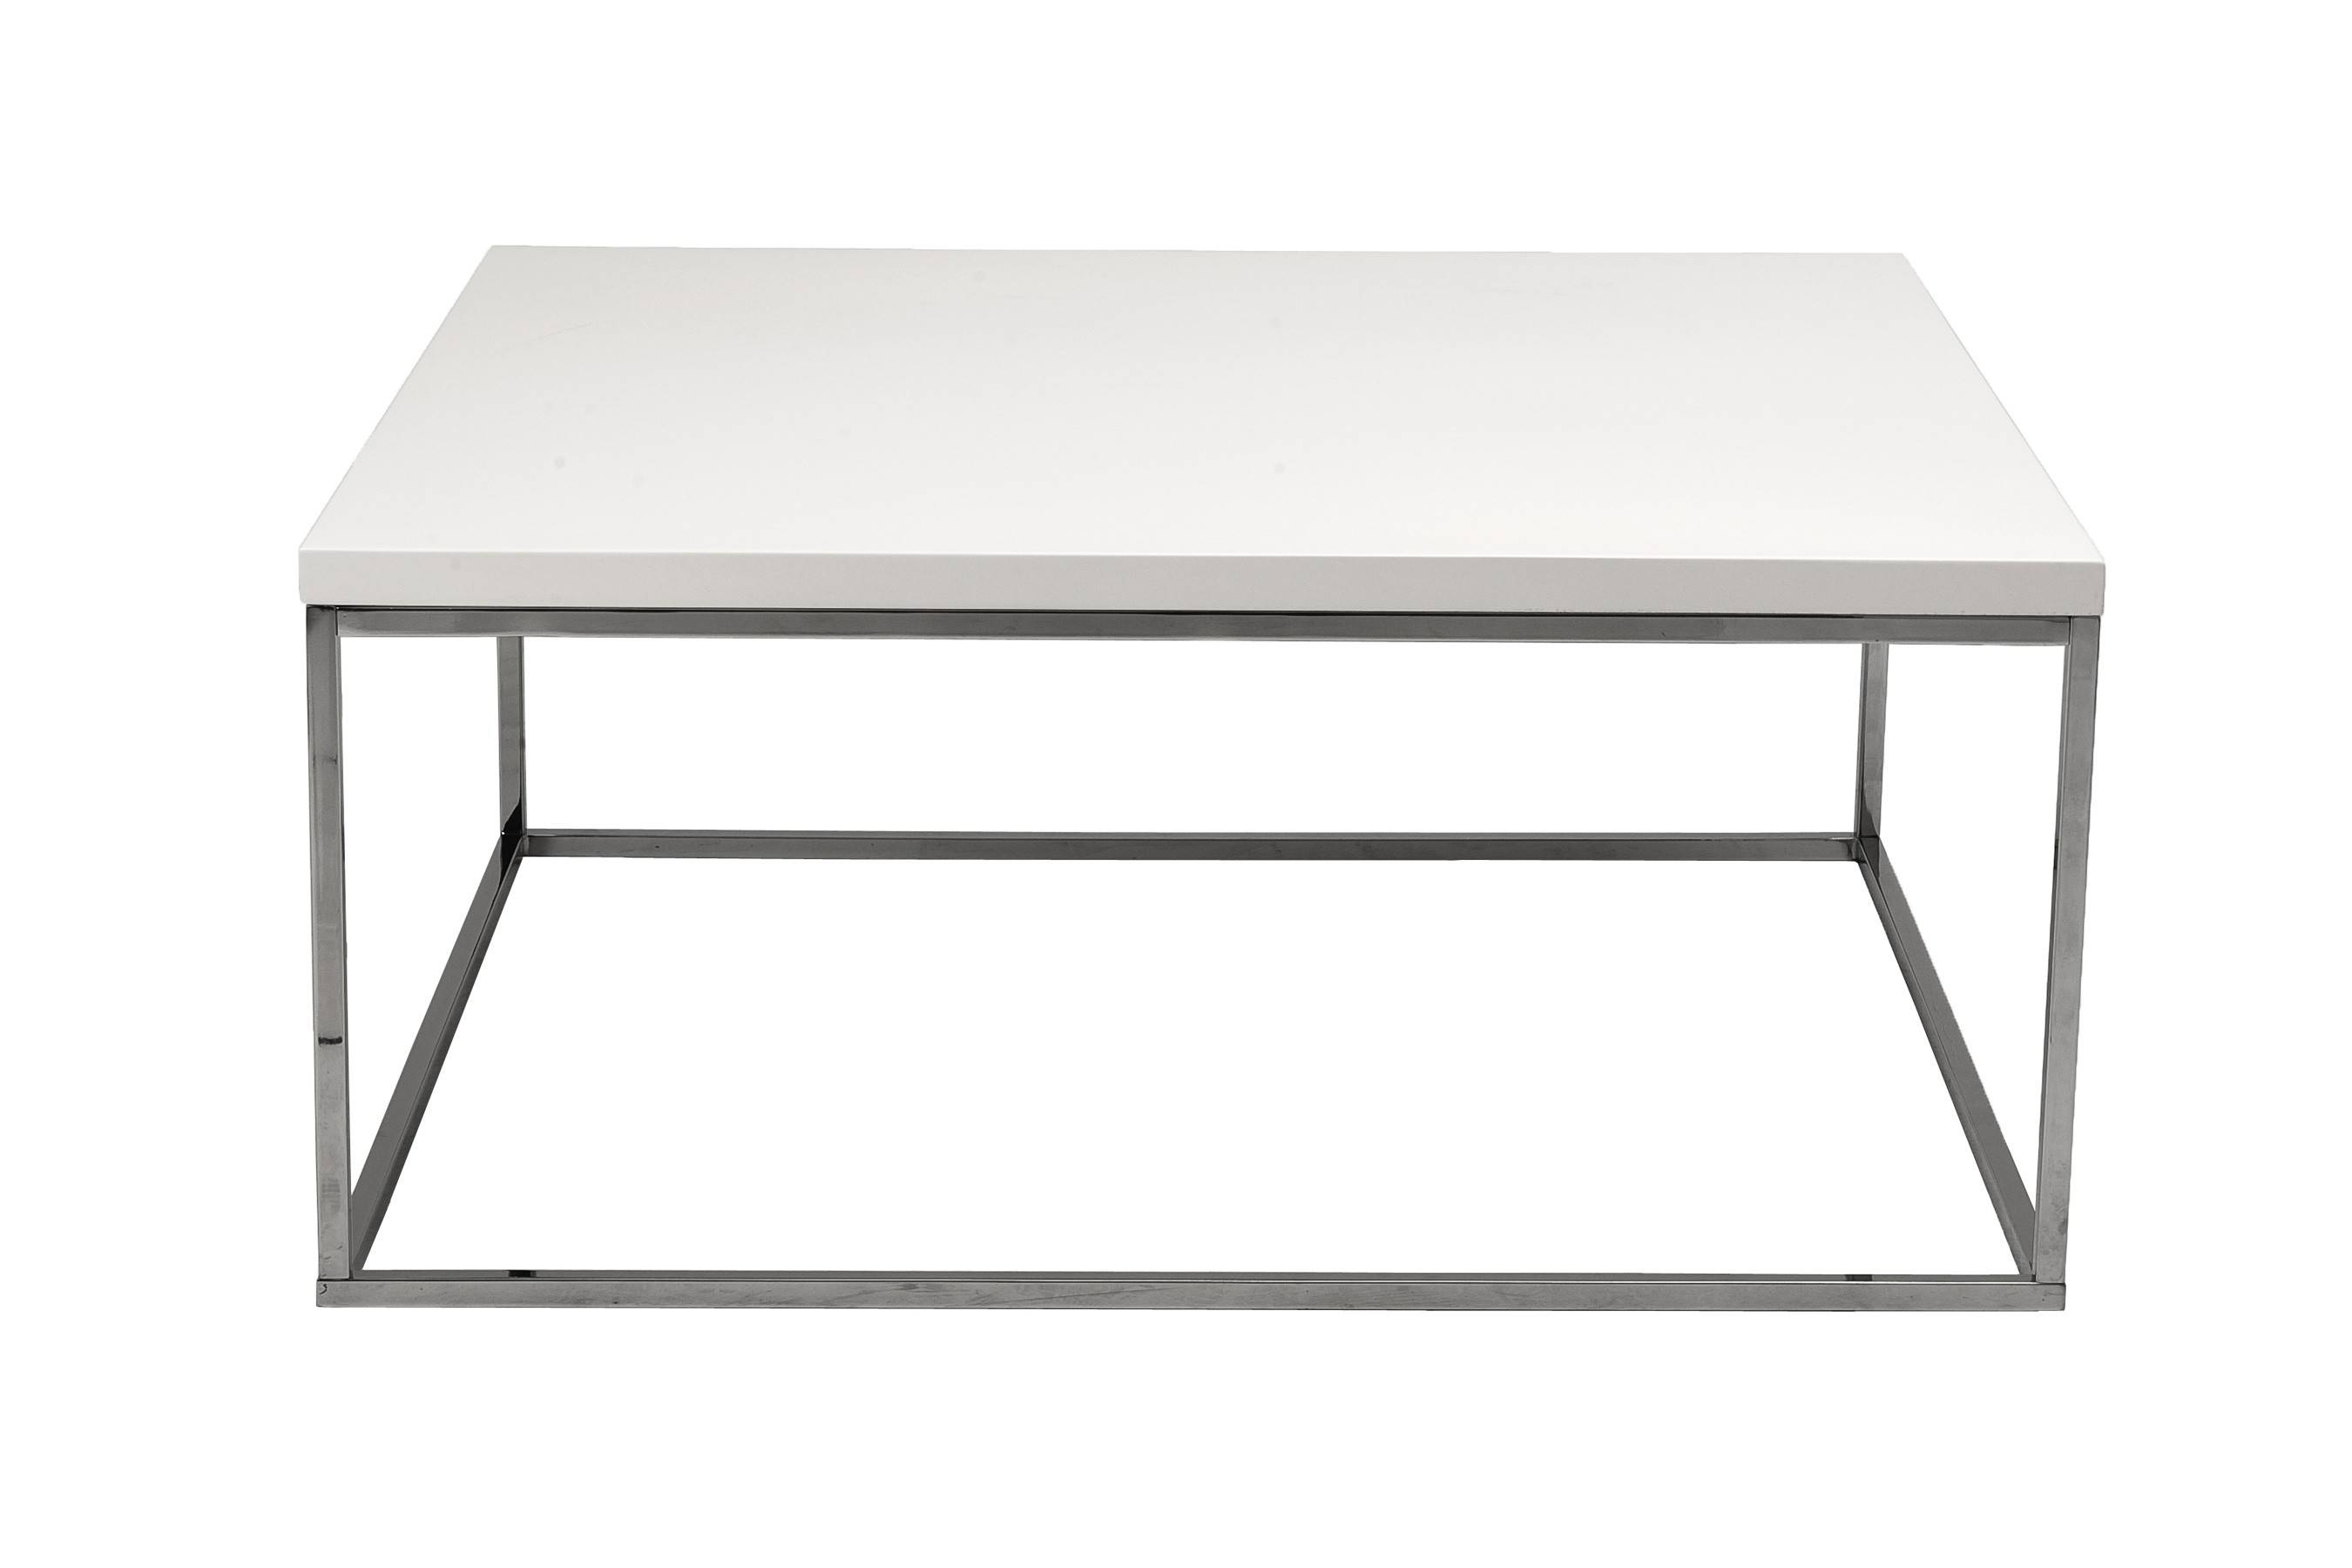 White Square Coffee Table | Coffeetablesmartin - Tables And Beyond intended for White Square Coffee Table (Image 30 of 30)